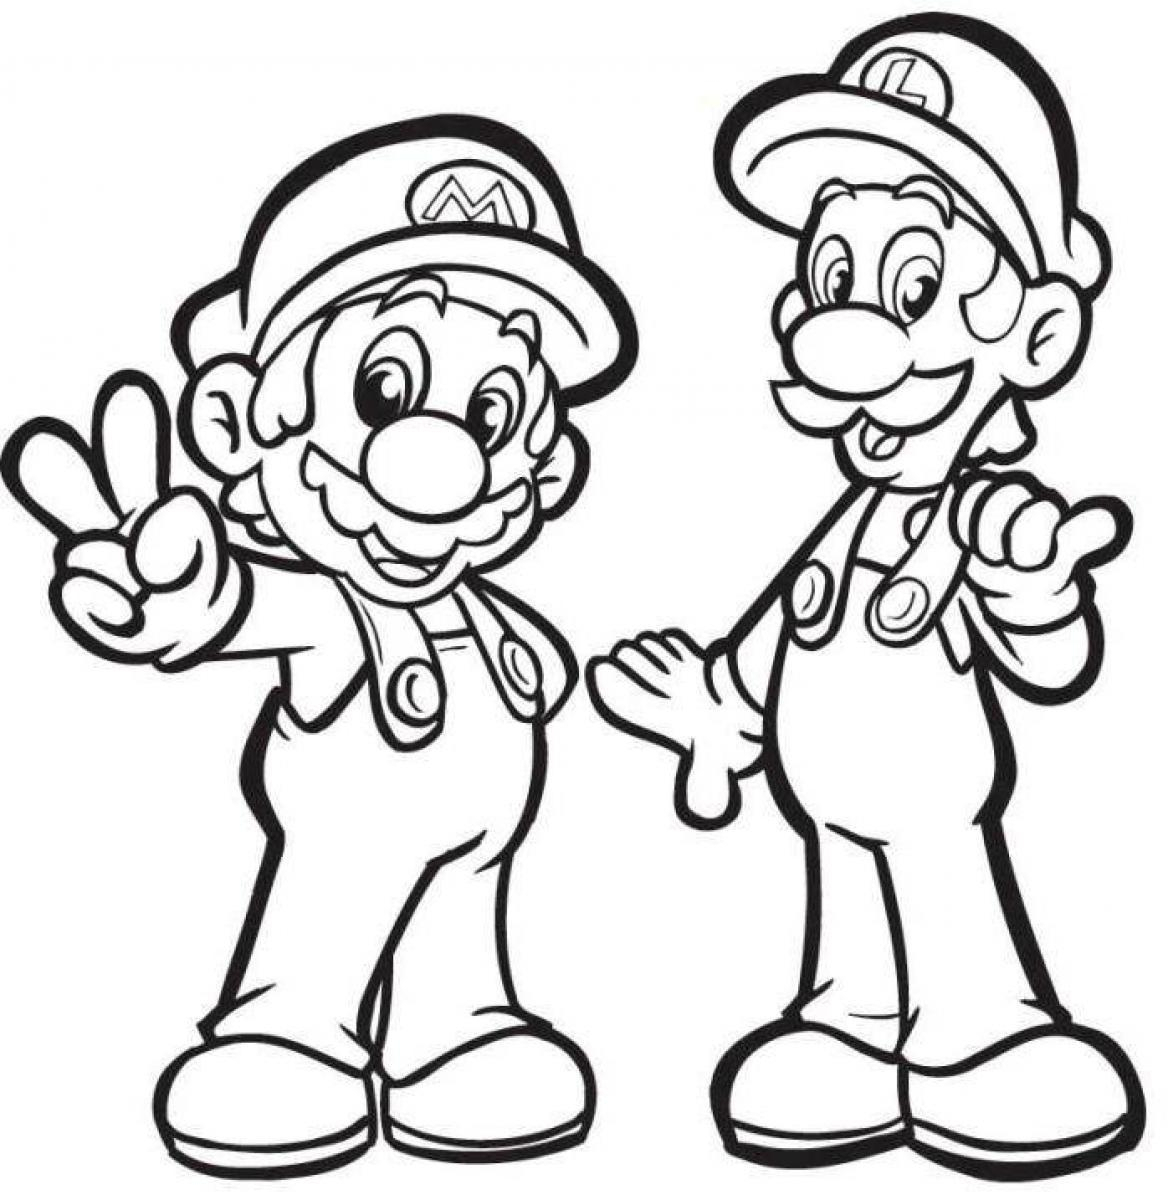 1168x1200 Mario And Luigi Drawing Drawing For Kids Mario Printable